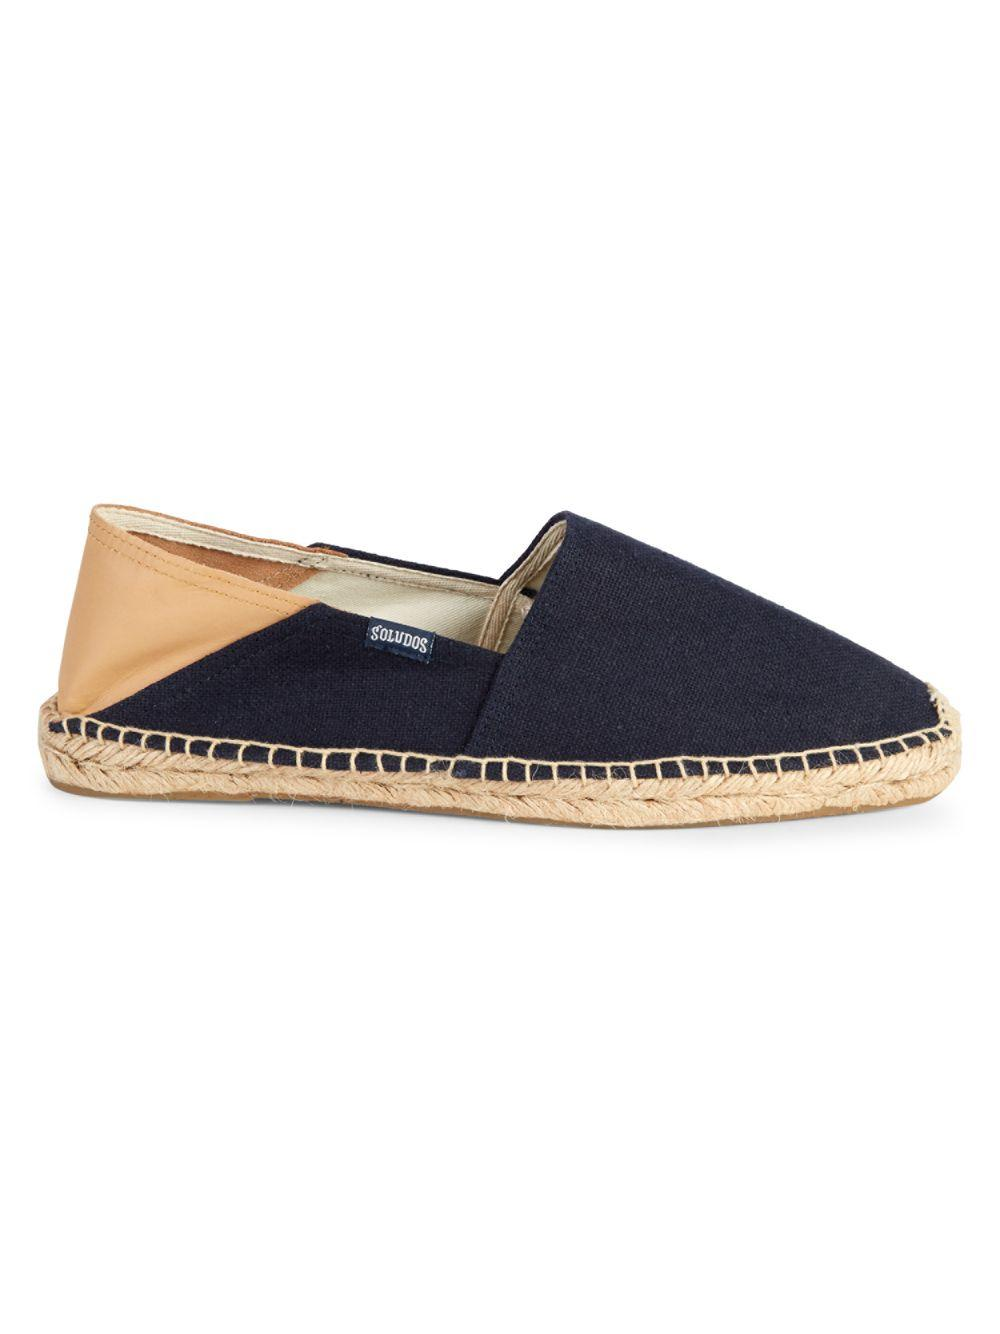 1724a0d1e Lyst - Soludos Collapsible Heel Convertible Espadrille Flats in Blue ...